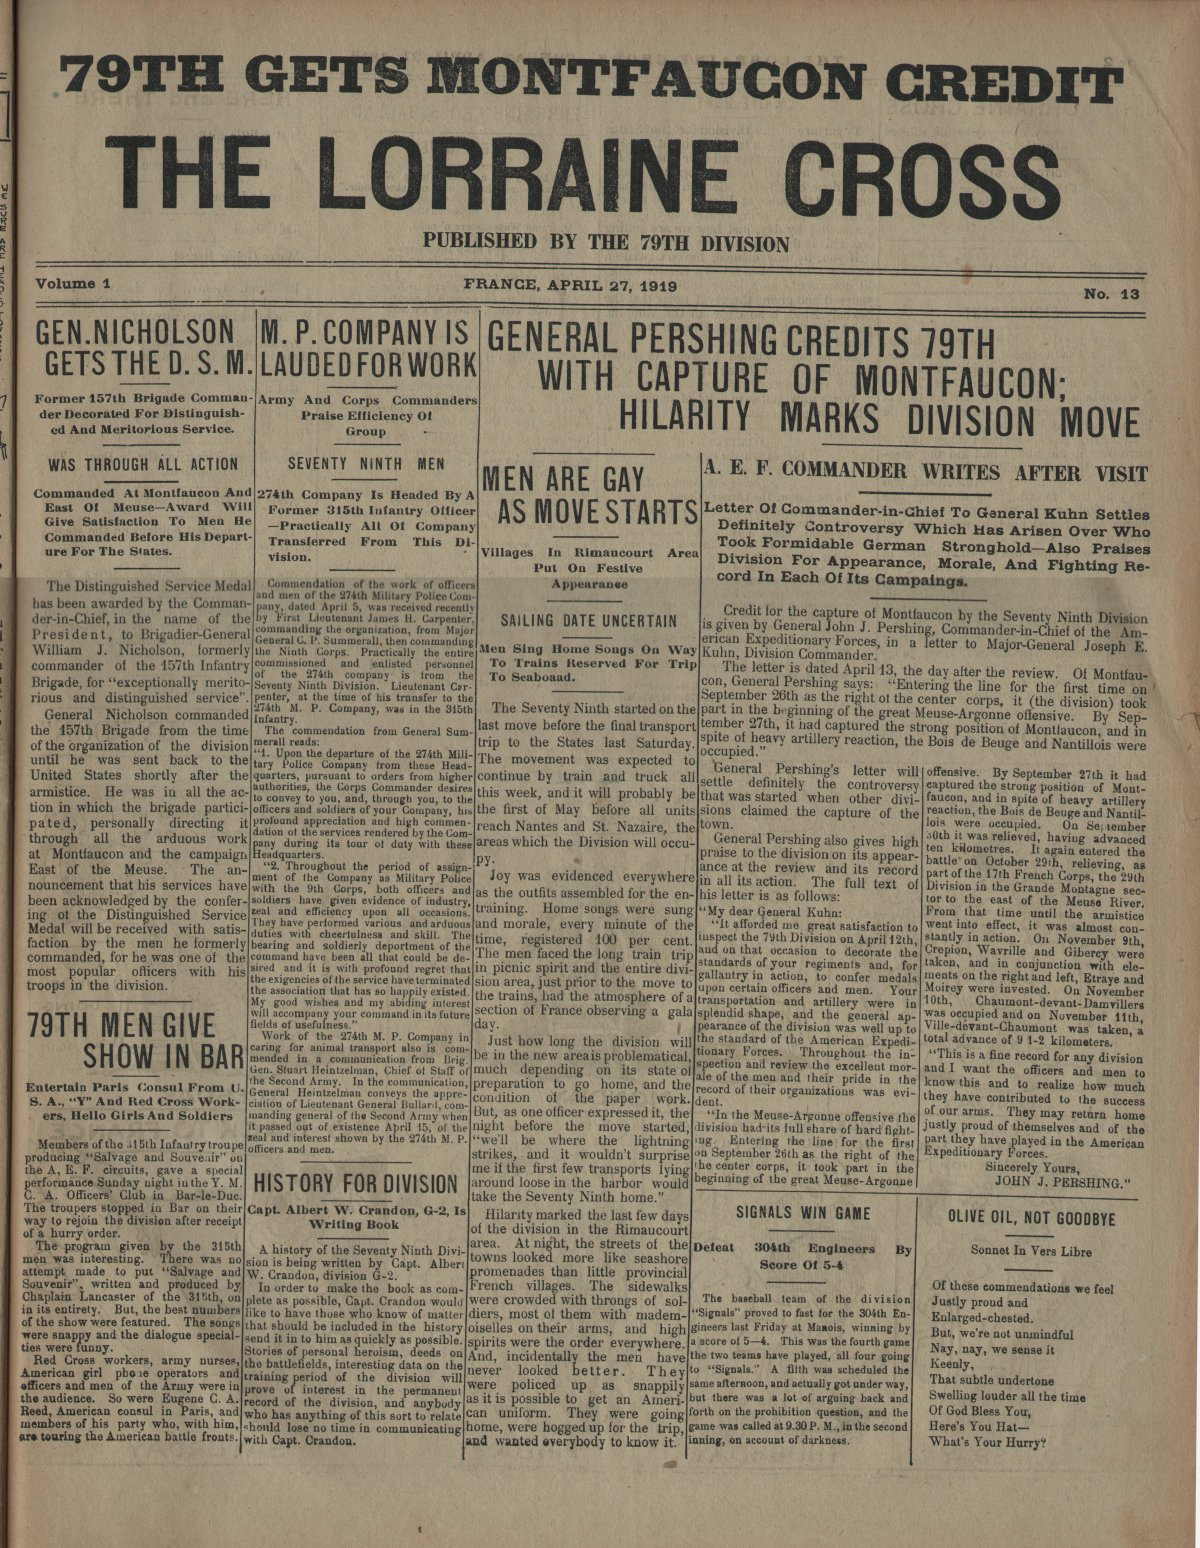 Lorraine Cross Newspaper Volume 1 Number 5 France April 27 1919 Page 1